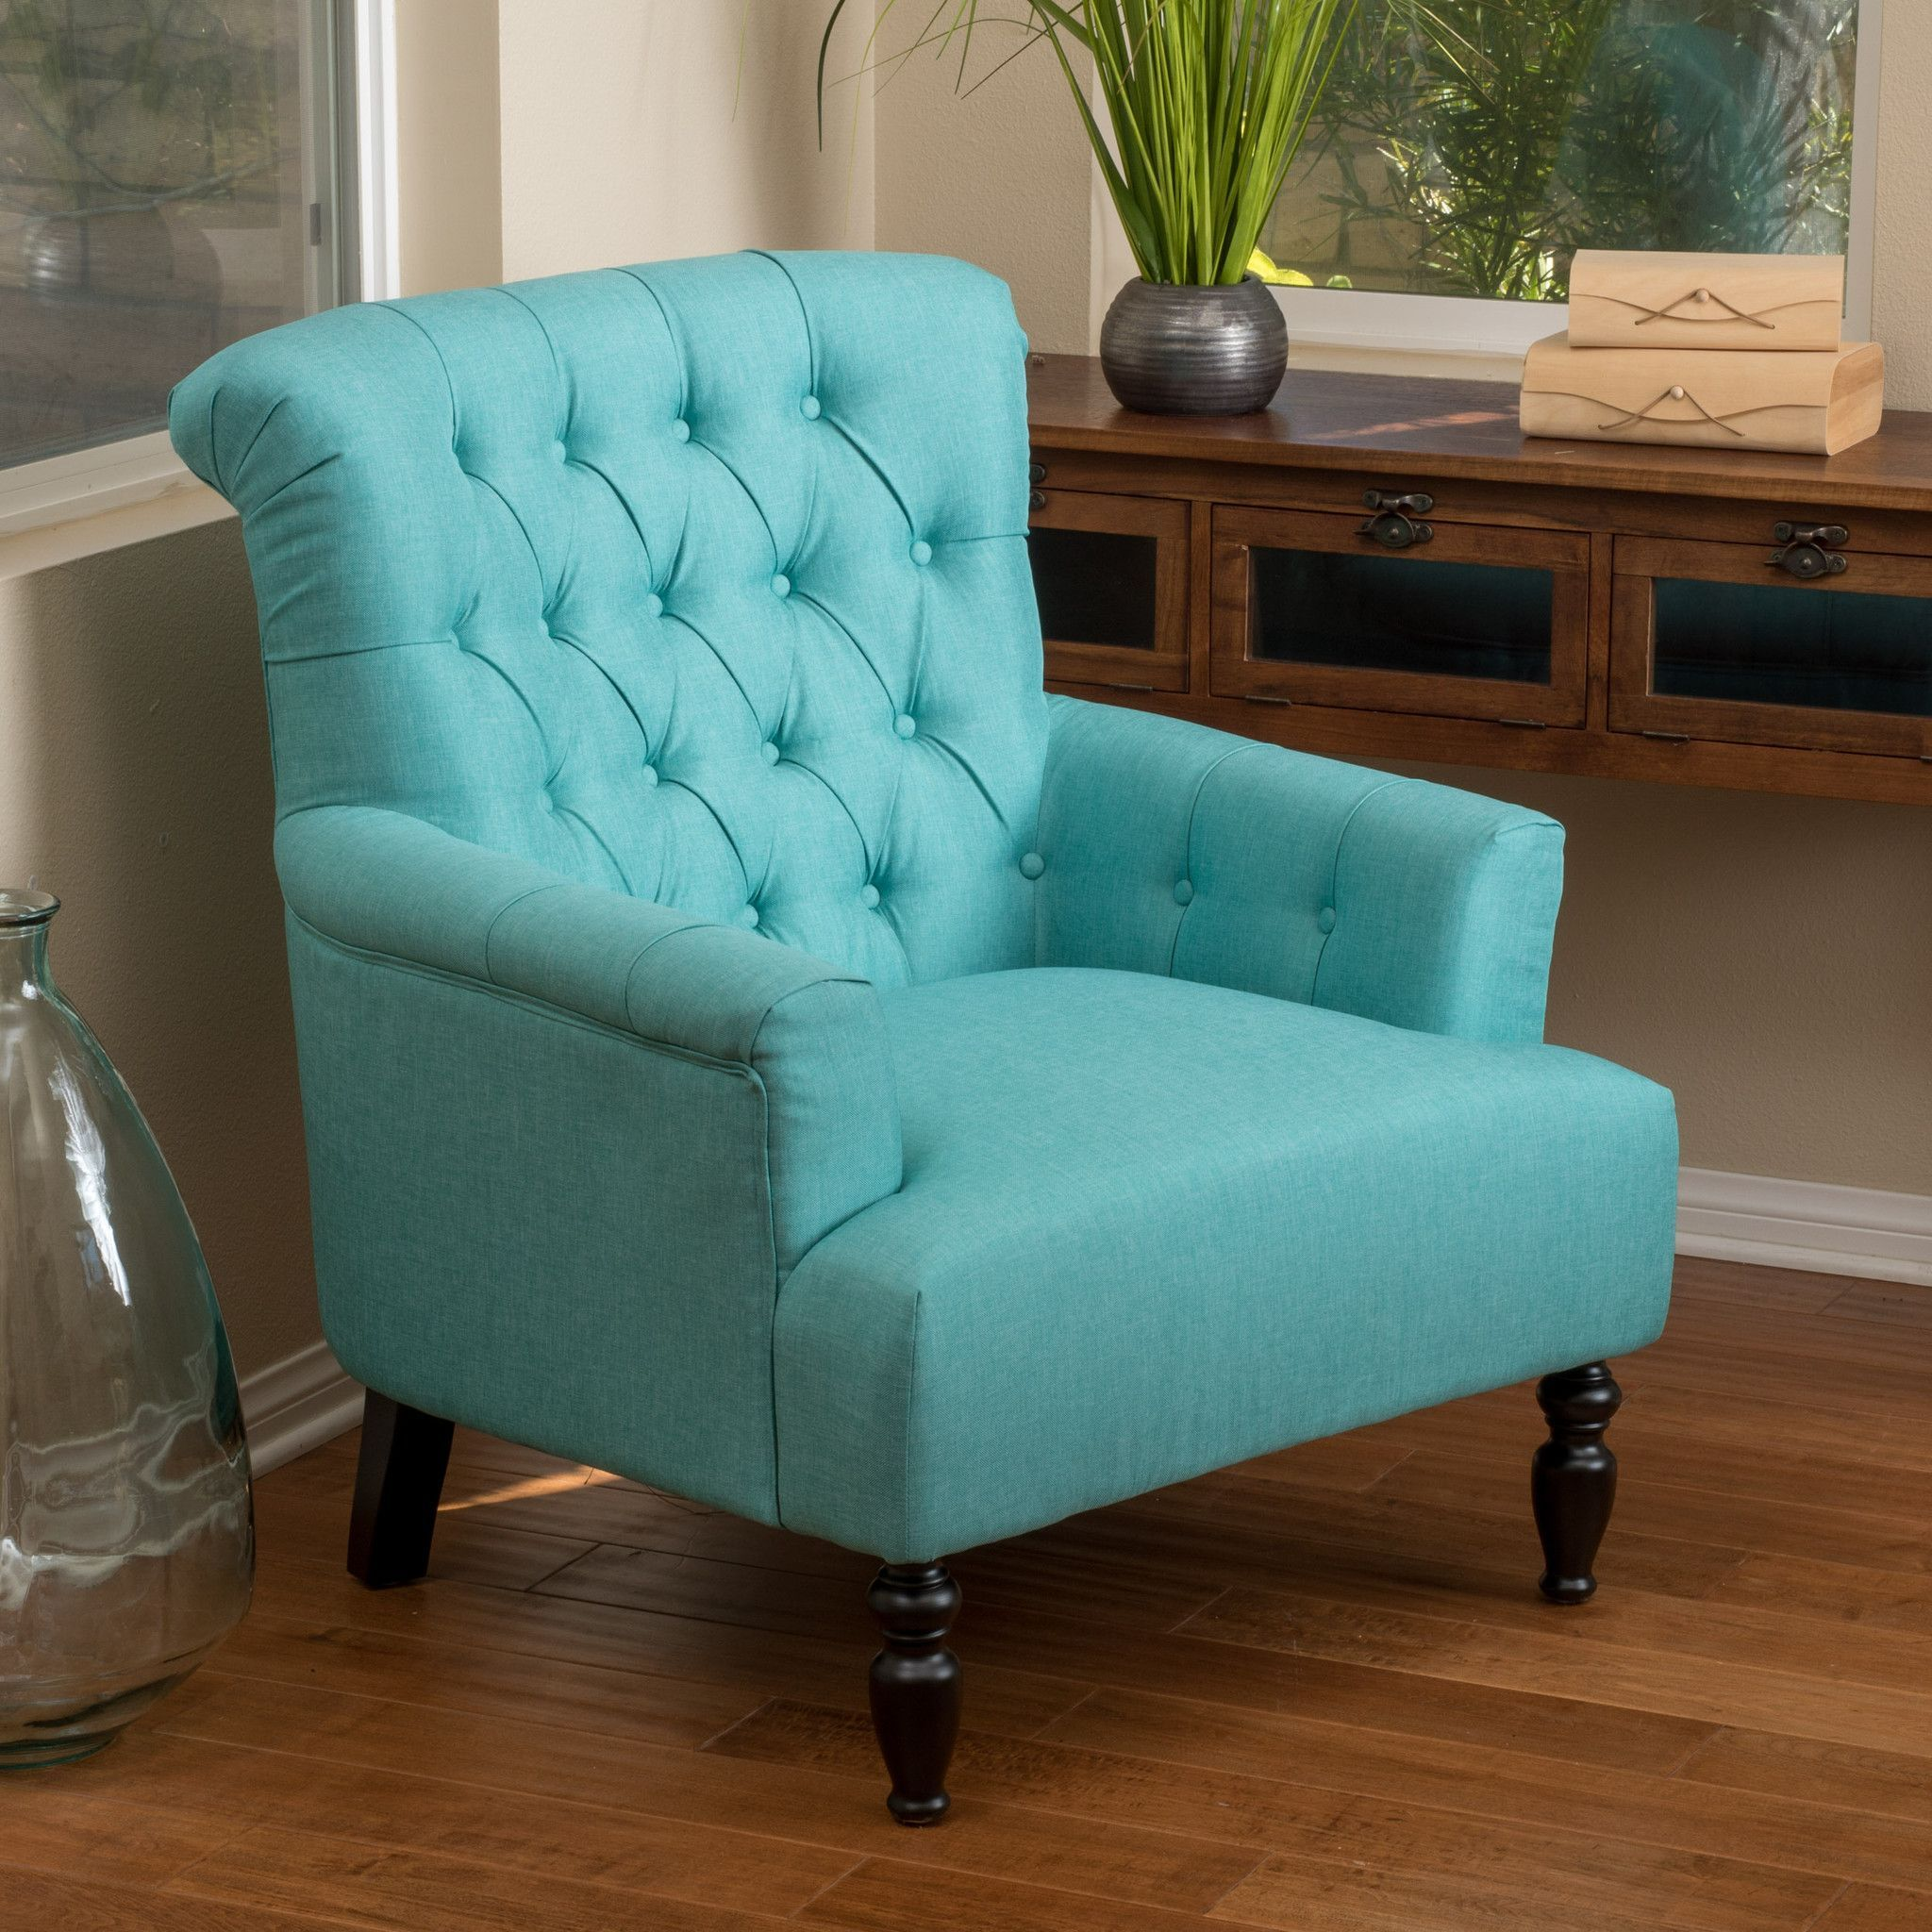 Harvey teal fabric club chair teal fabric upholstery and cozy